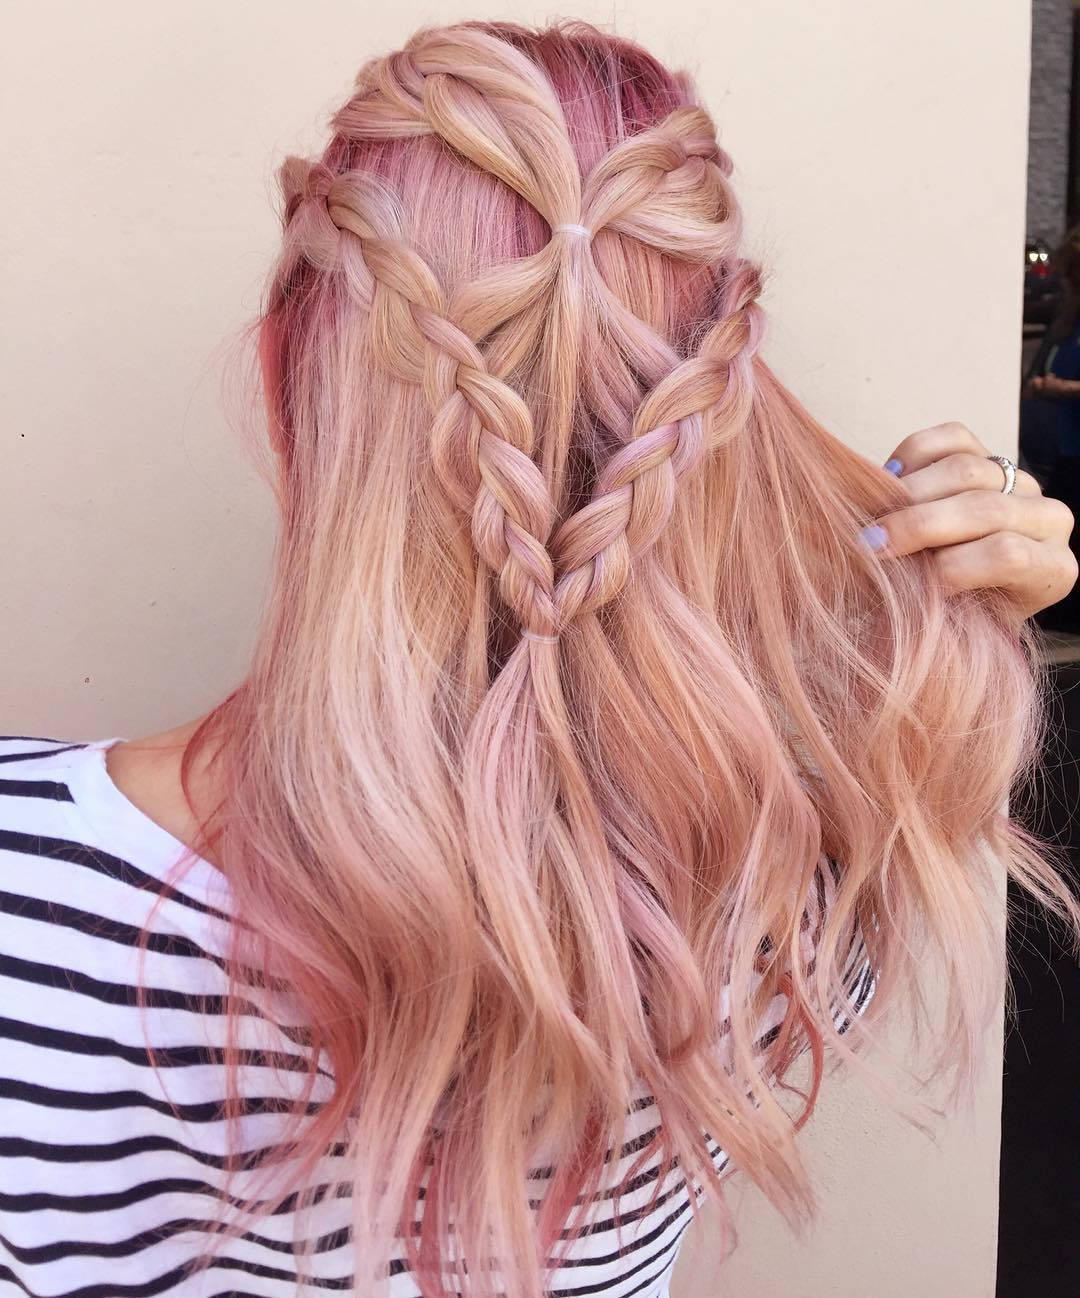 simple braided hair styles 20 hairstyles you will want to rock immediately 3212